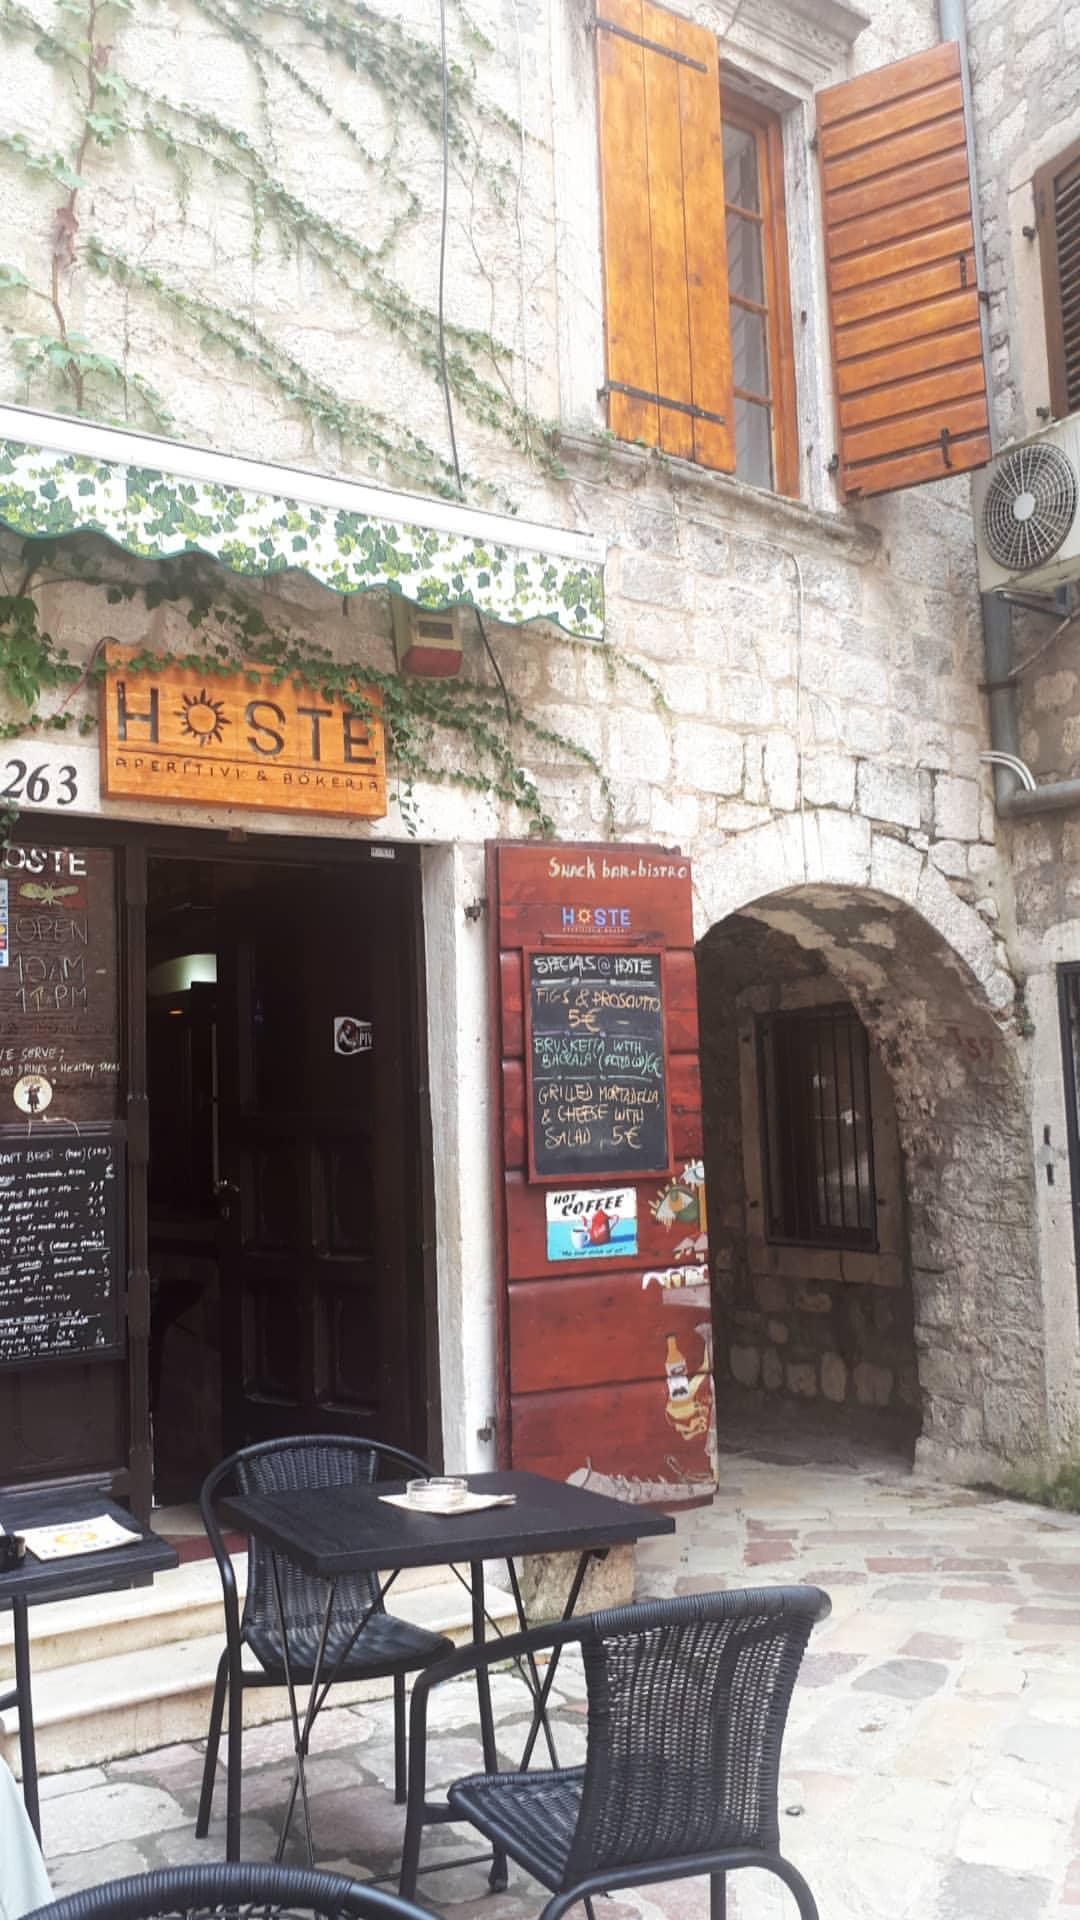 hoste kotor - a restaurant in an old town with black tables and chairs outside and ivy climbing up the walls